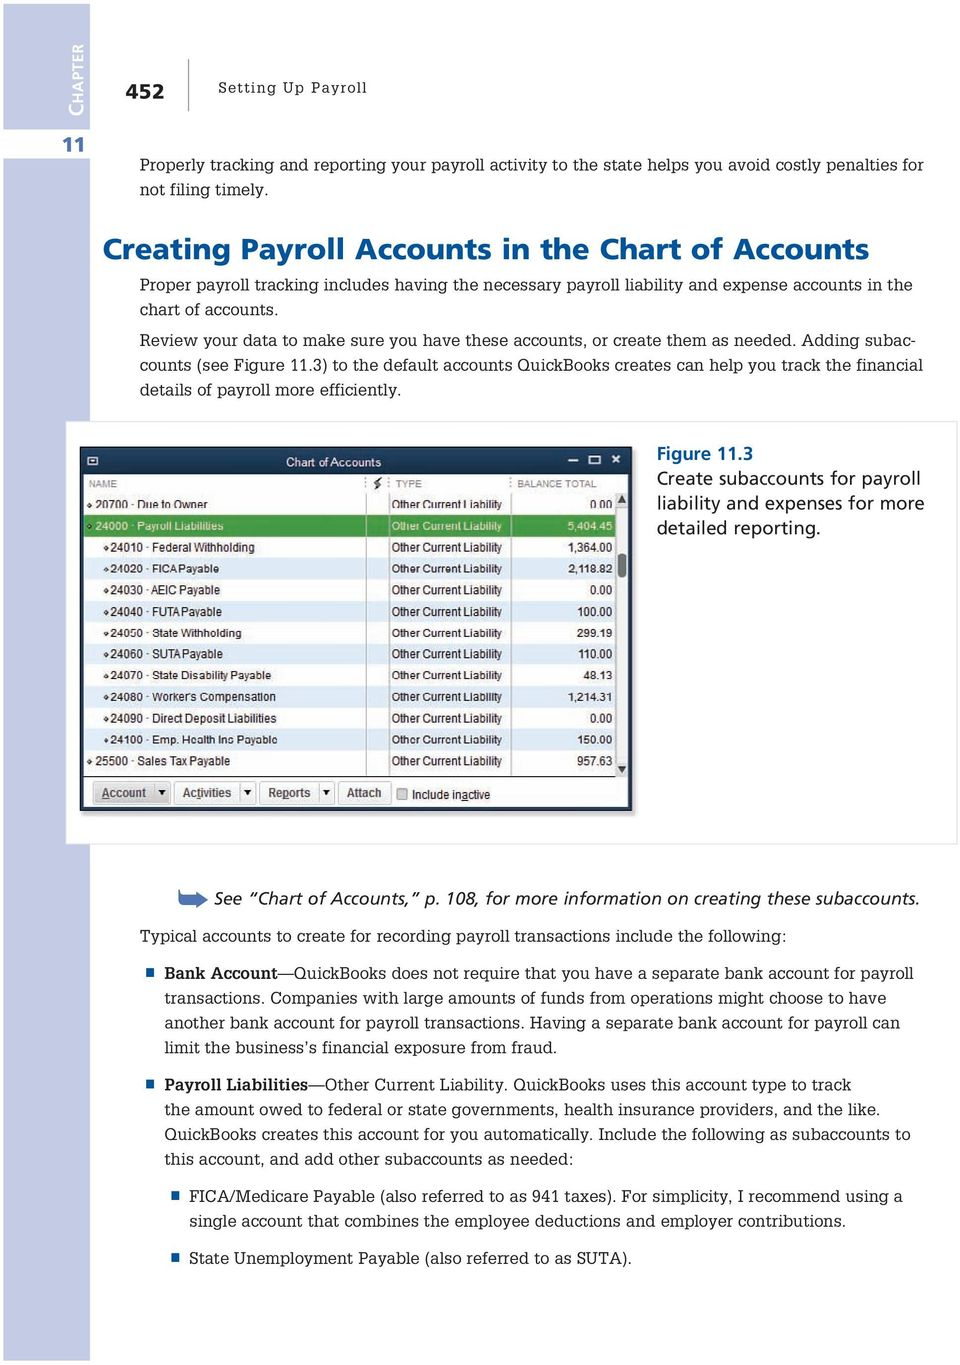 Review your data to make sure you have these accounts, or create them as needed. Adding subaccounts (see Figure.